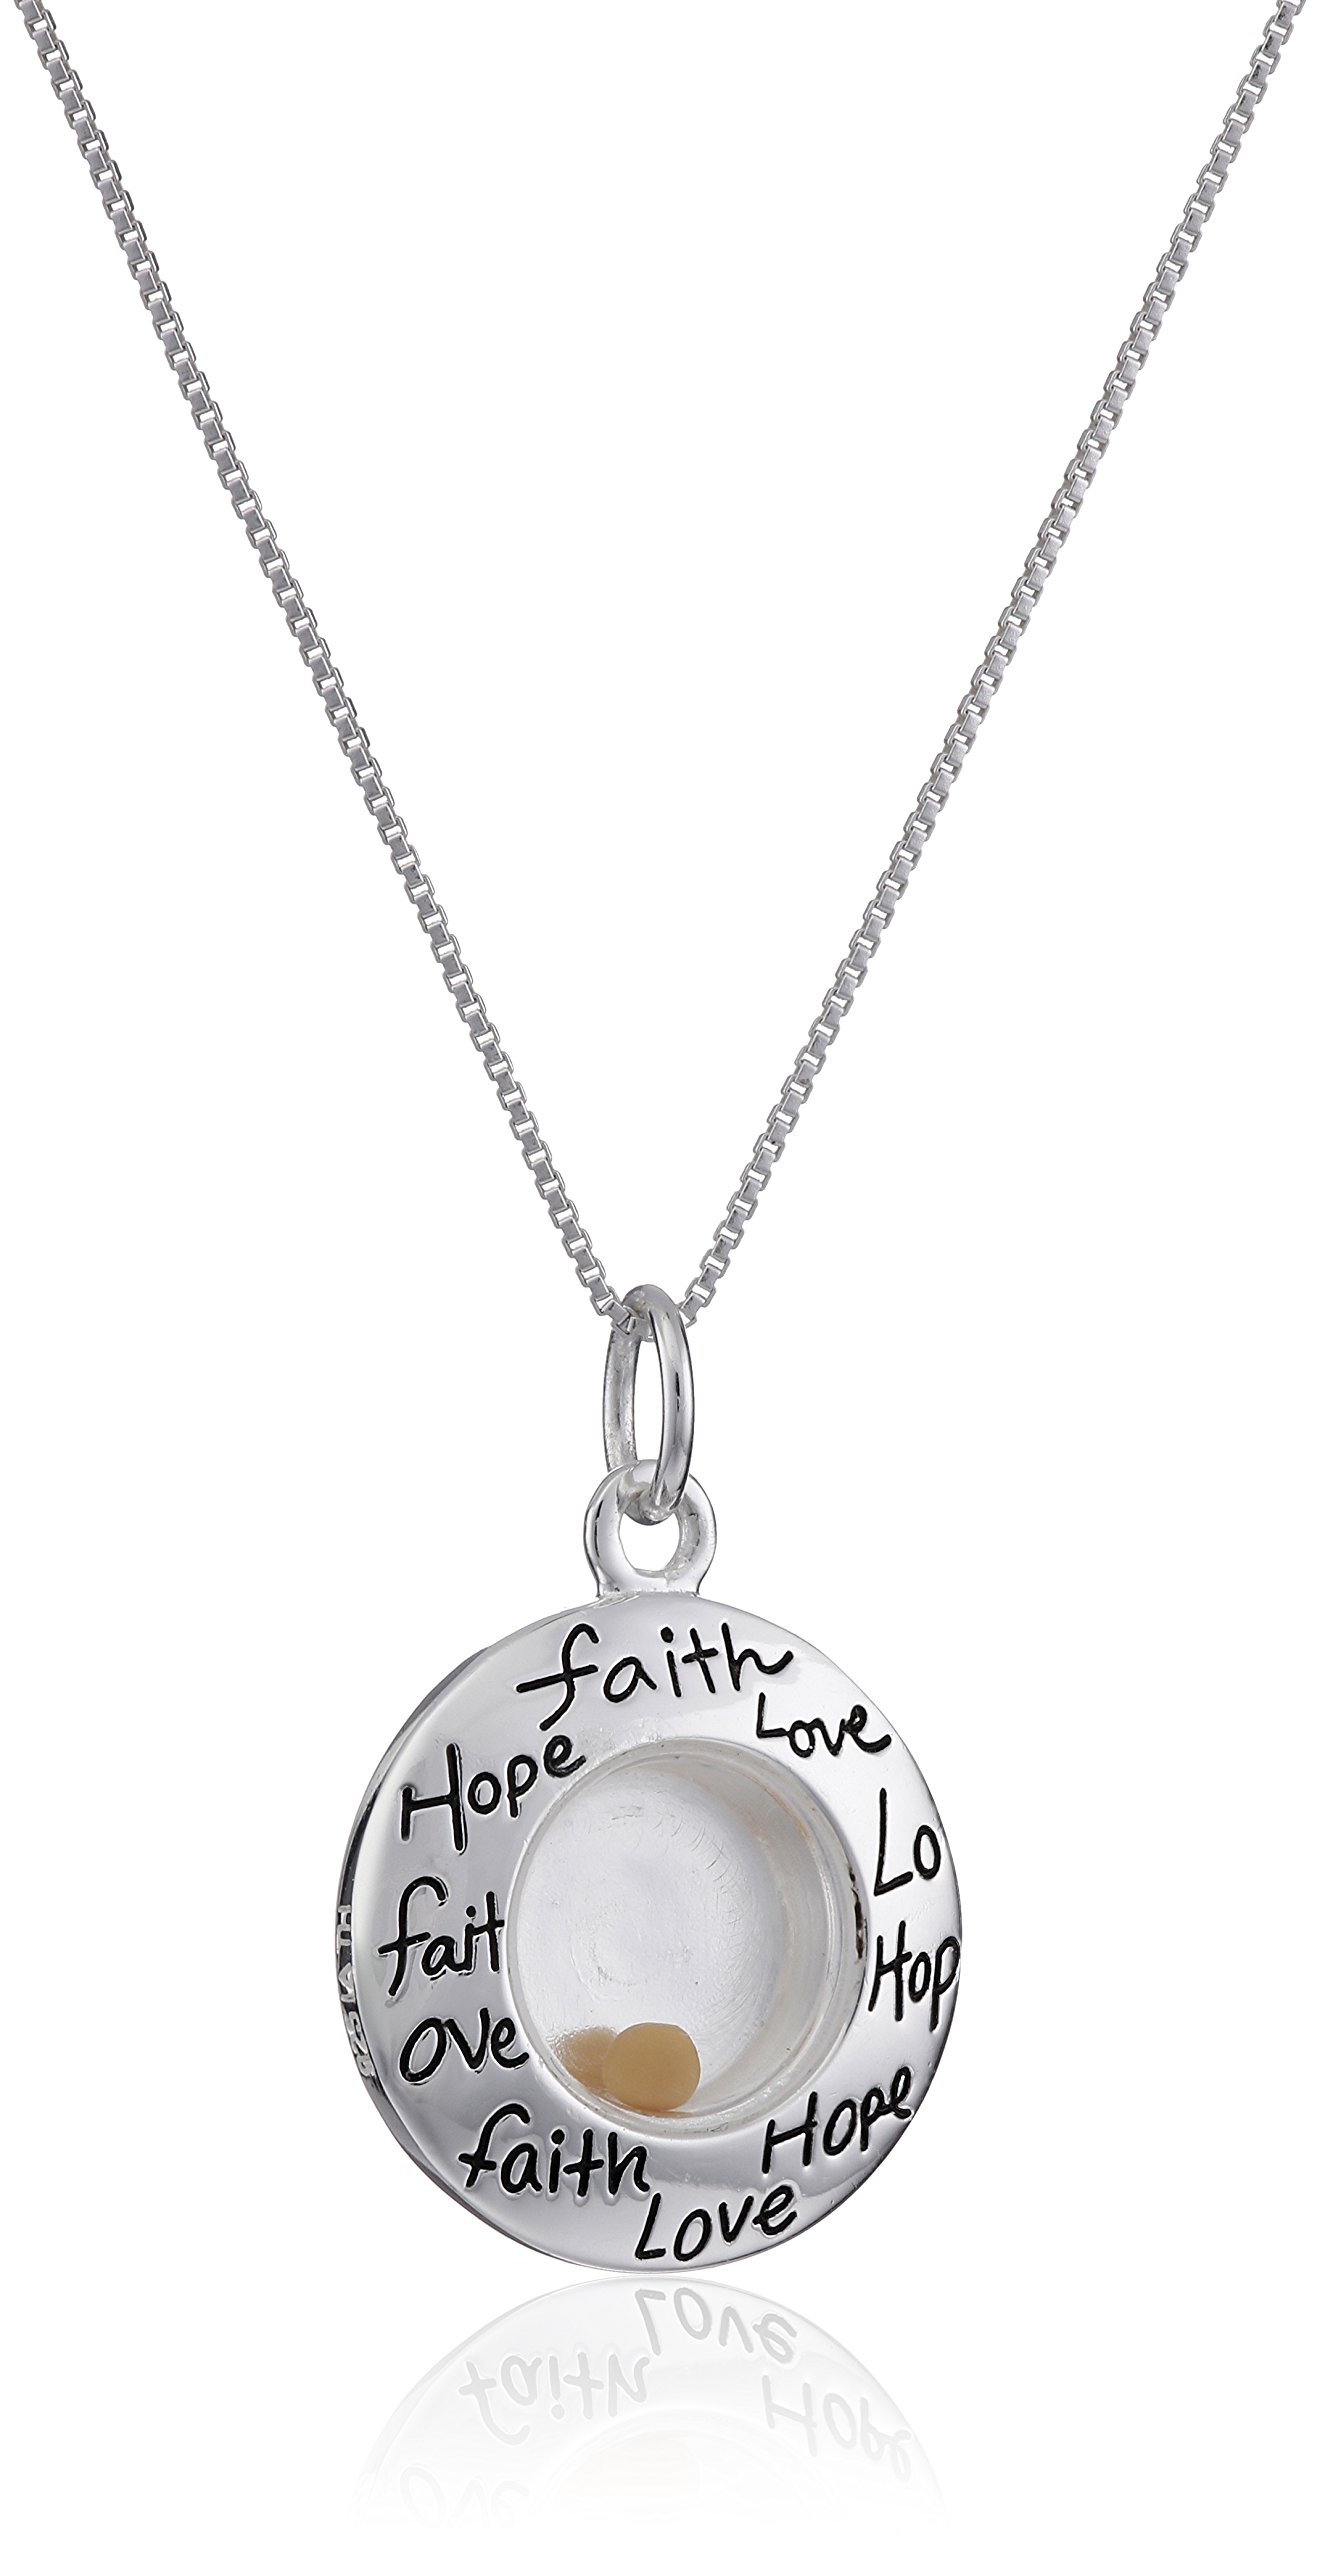 Sterling Silver''Faith Hope Love'' Floating Mustard Seed Circle Pendant Necklace, 18''